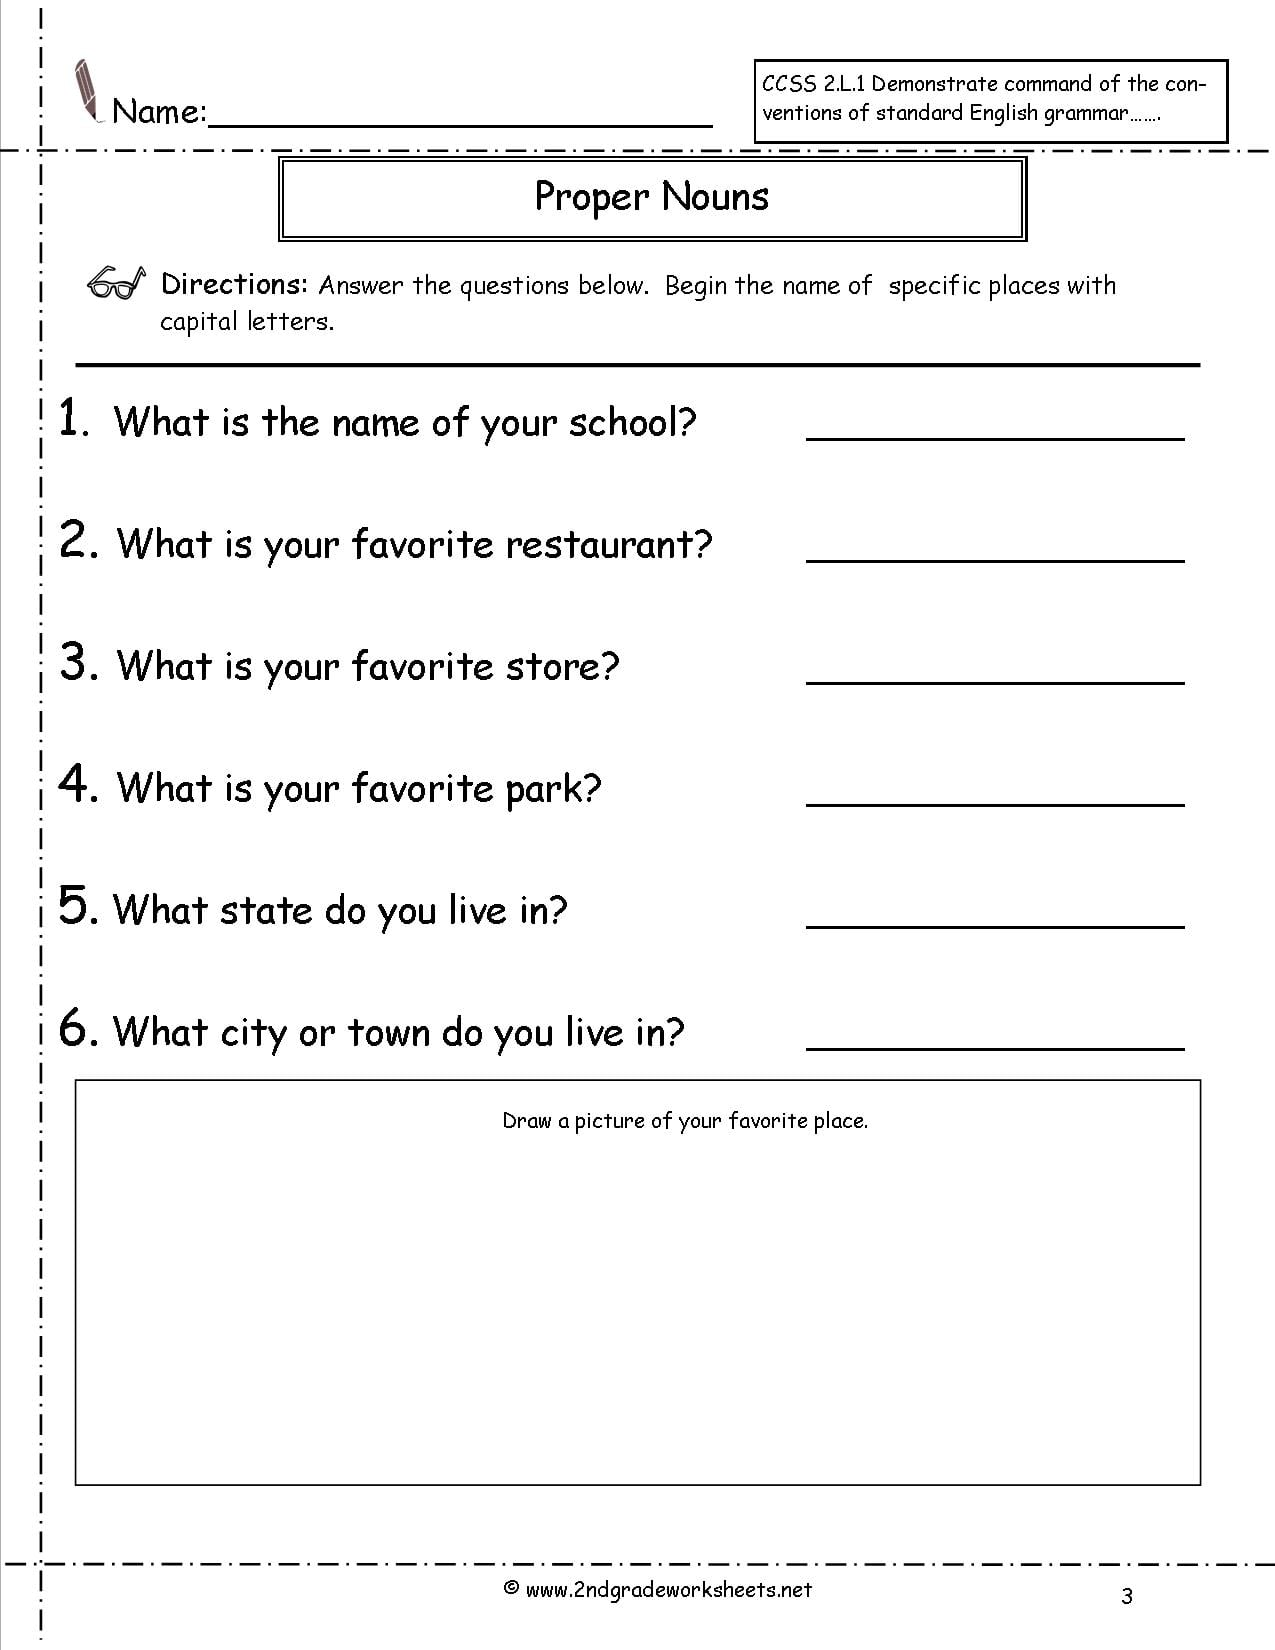 Common Proper Nouns Worksheet The Best Worksheets Image Collection